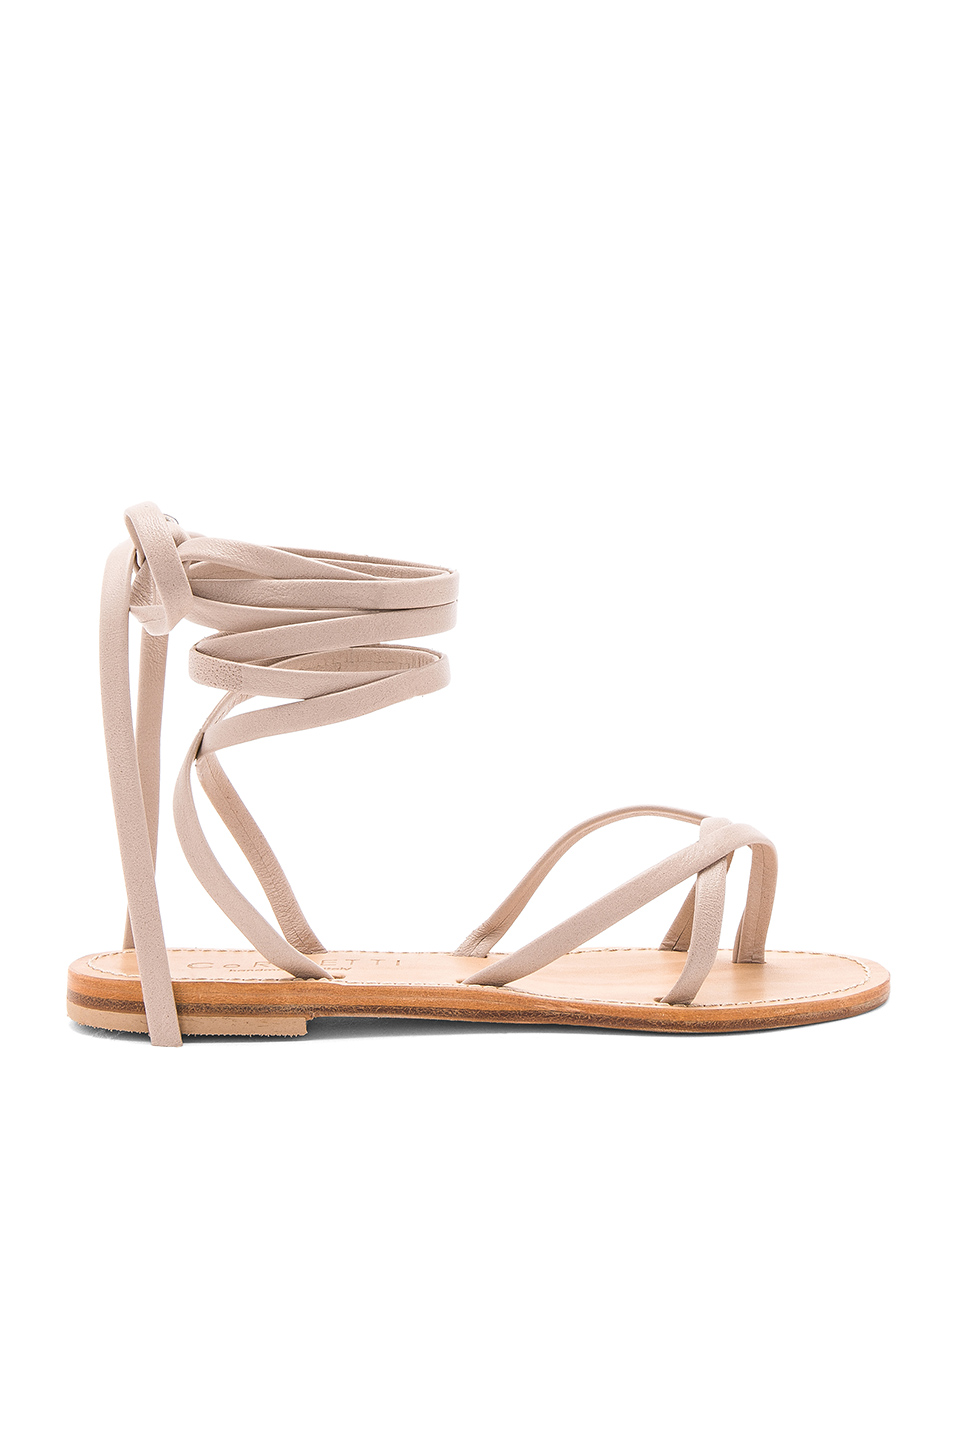 Aiano Sandals